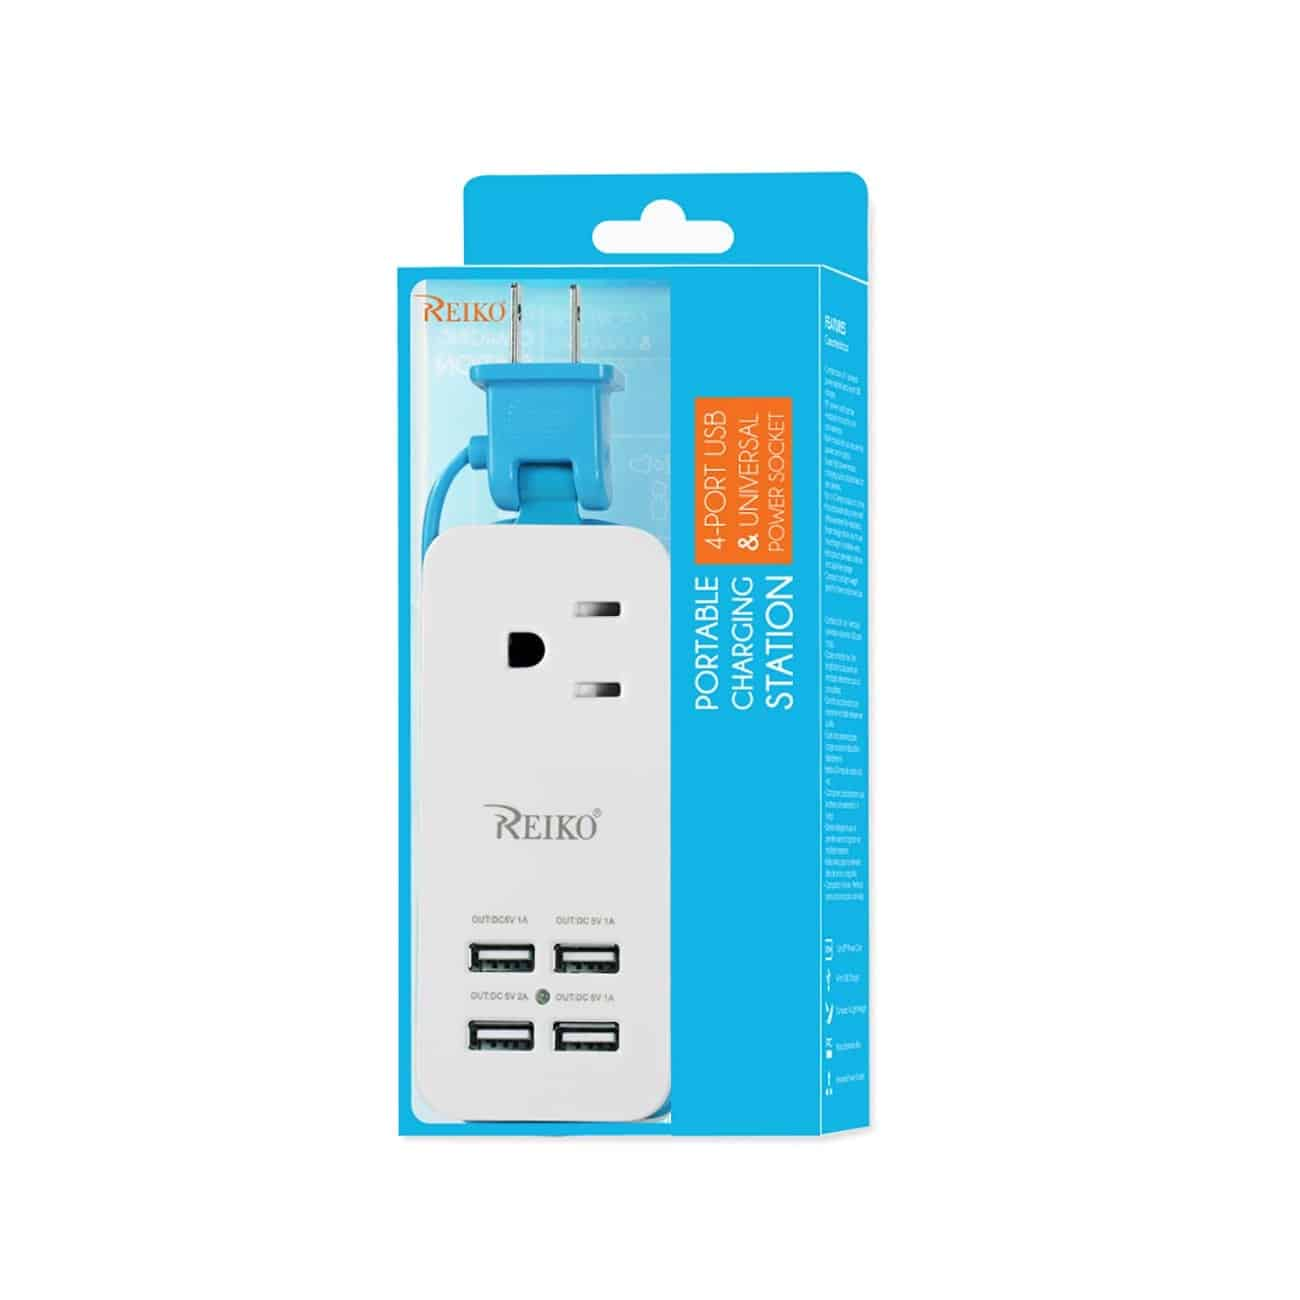 4 AMP HOME TRAVEL CHARGING STATION IN BLUE